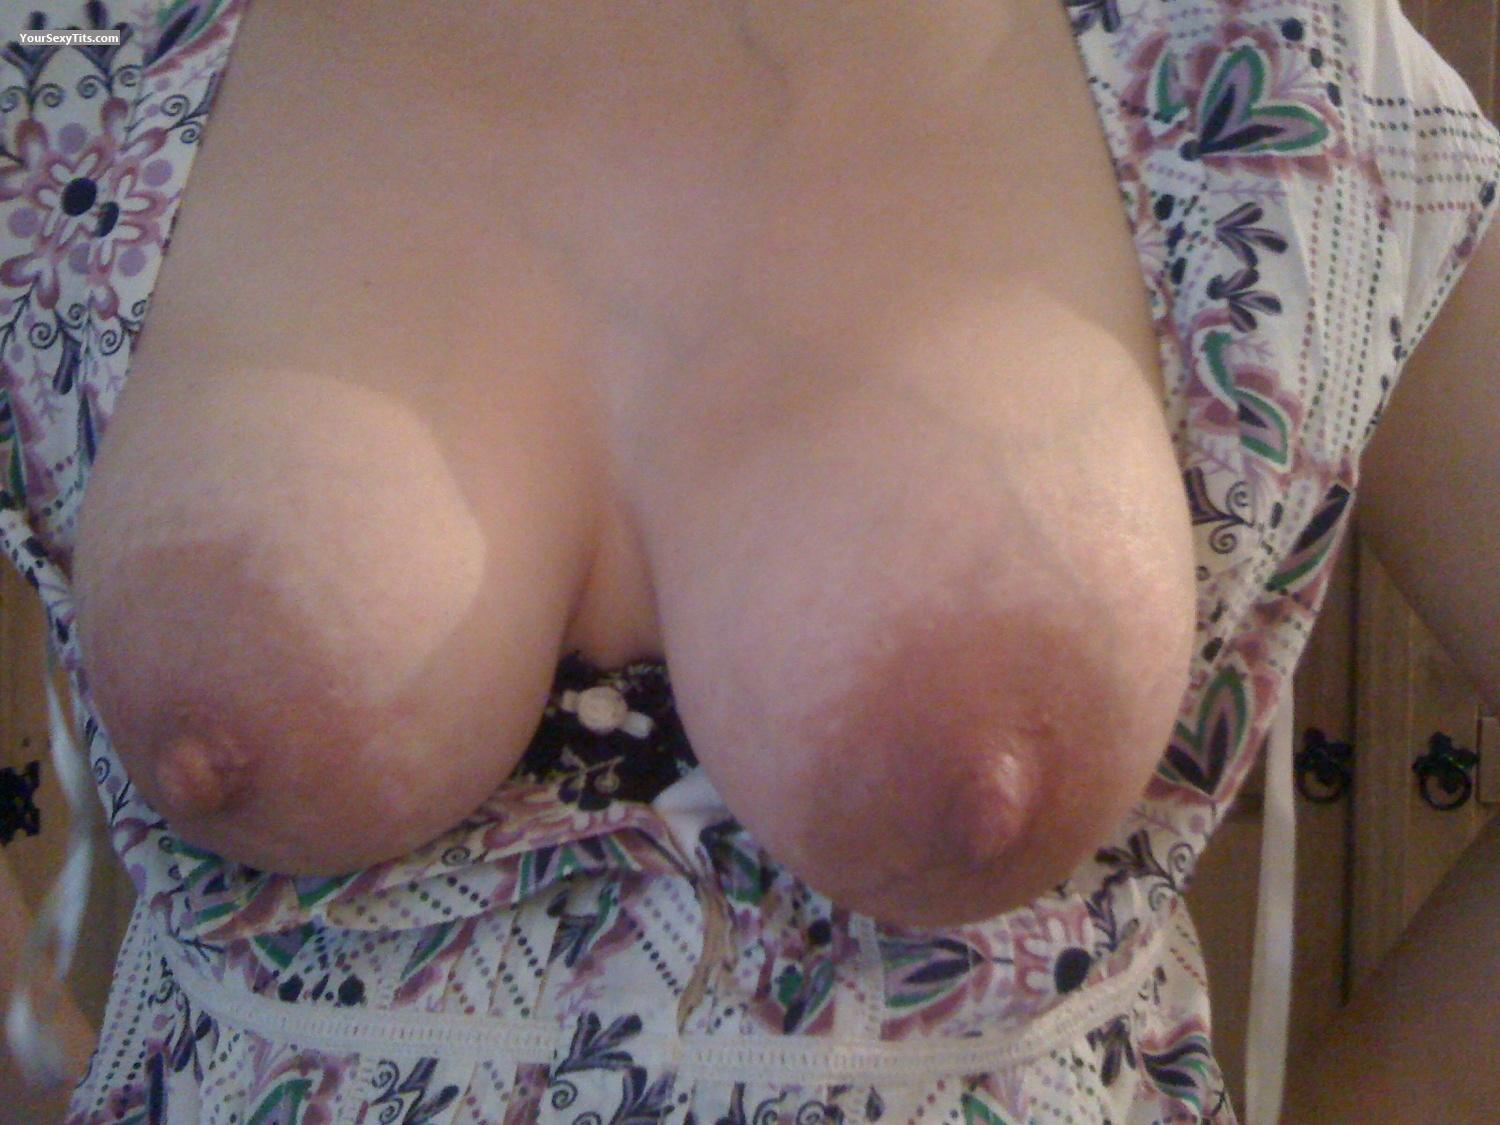 Tit Flash: Big Tits By IPhone - Sweetlips from United Kingdom